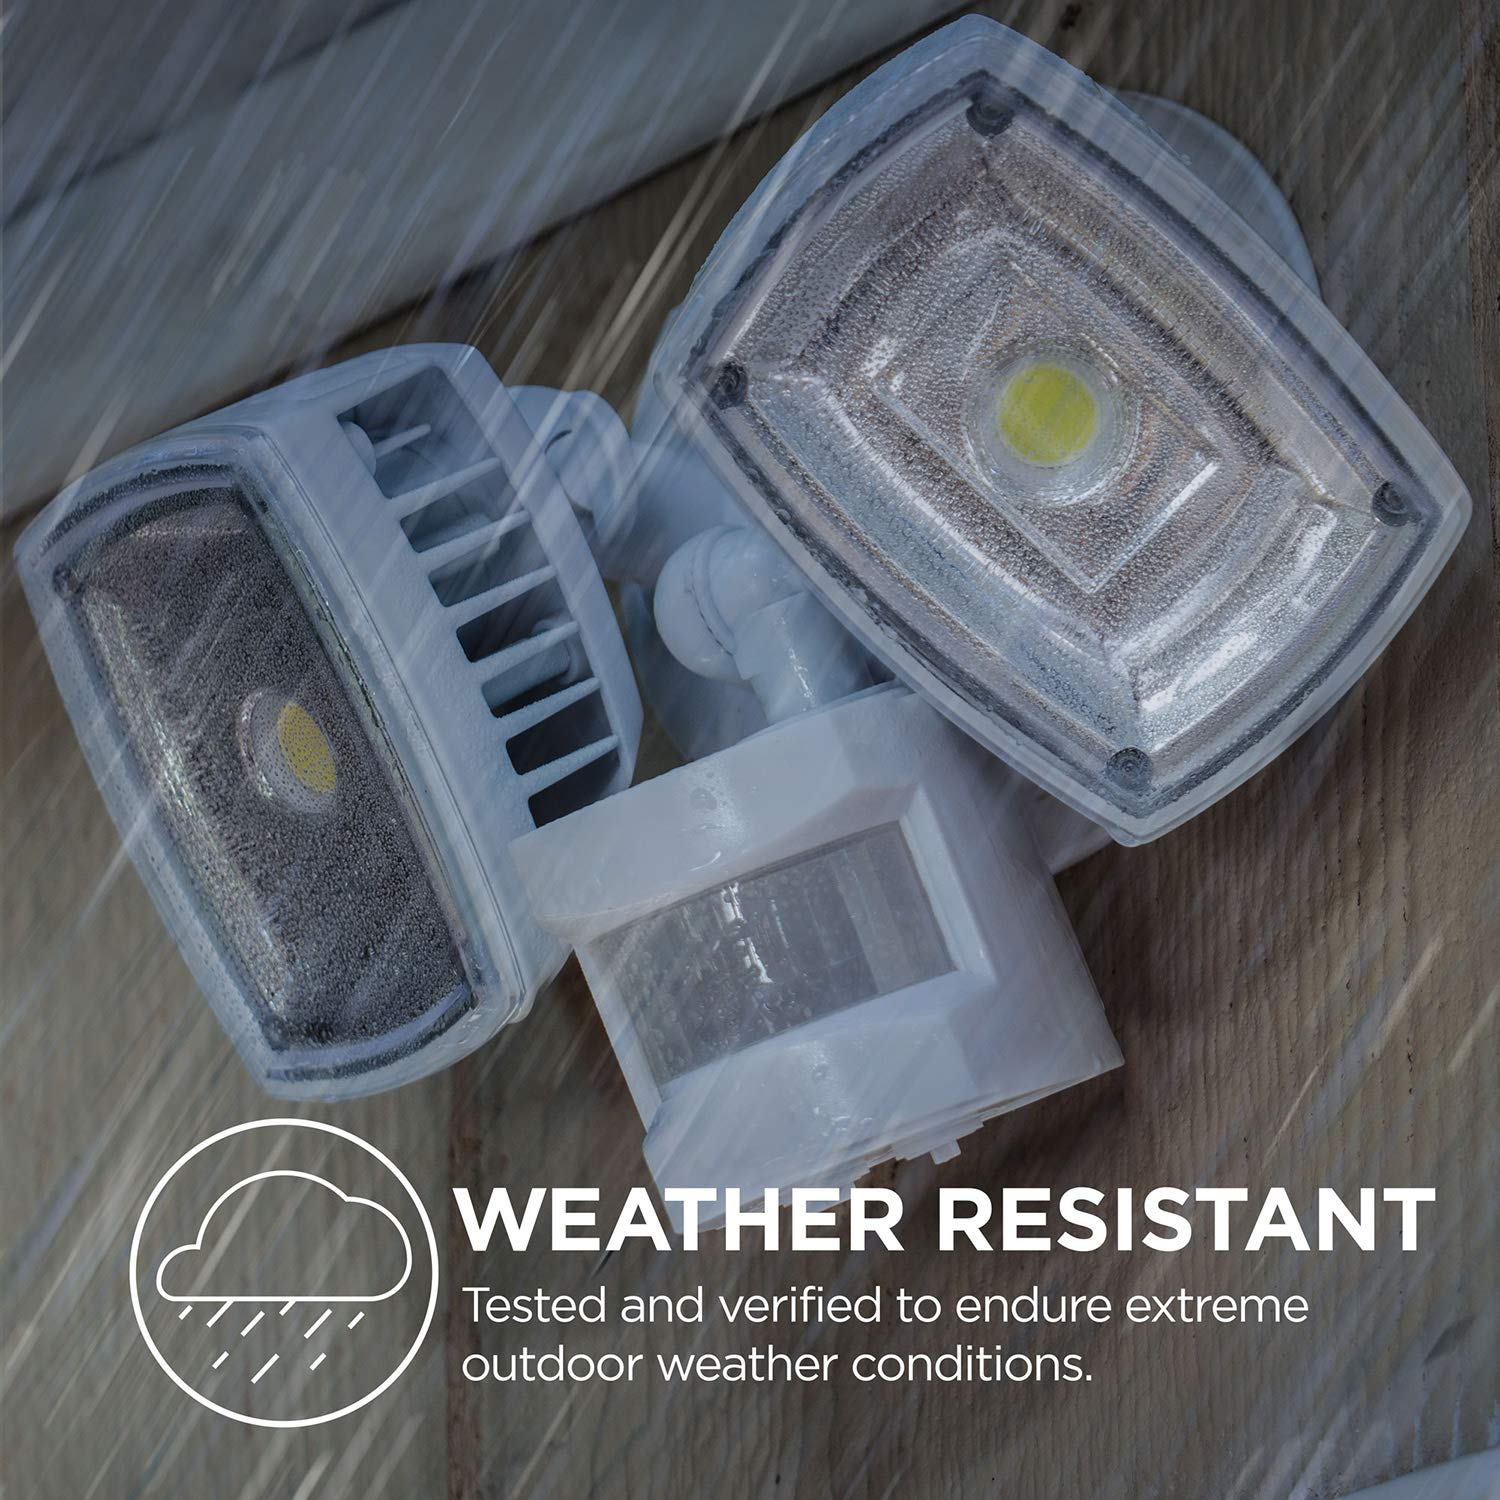 Home Zone ES00730U Security LED Motion Sensor Flood Lights, Outdoor Weatherproof Ultra Bright 5000K, White by Home Zone (Image #6)